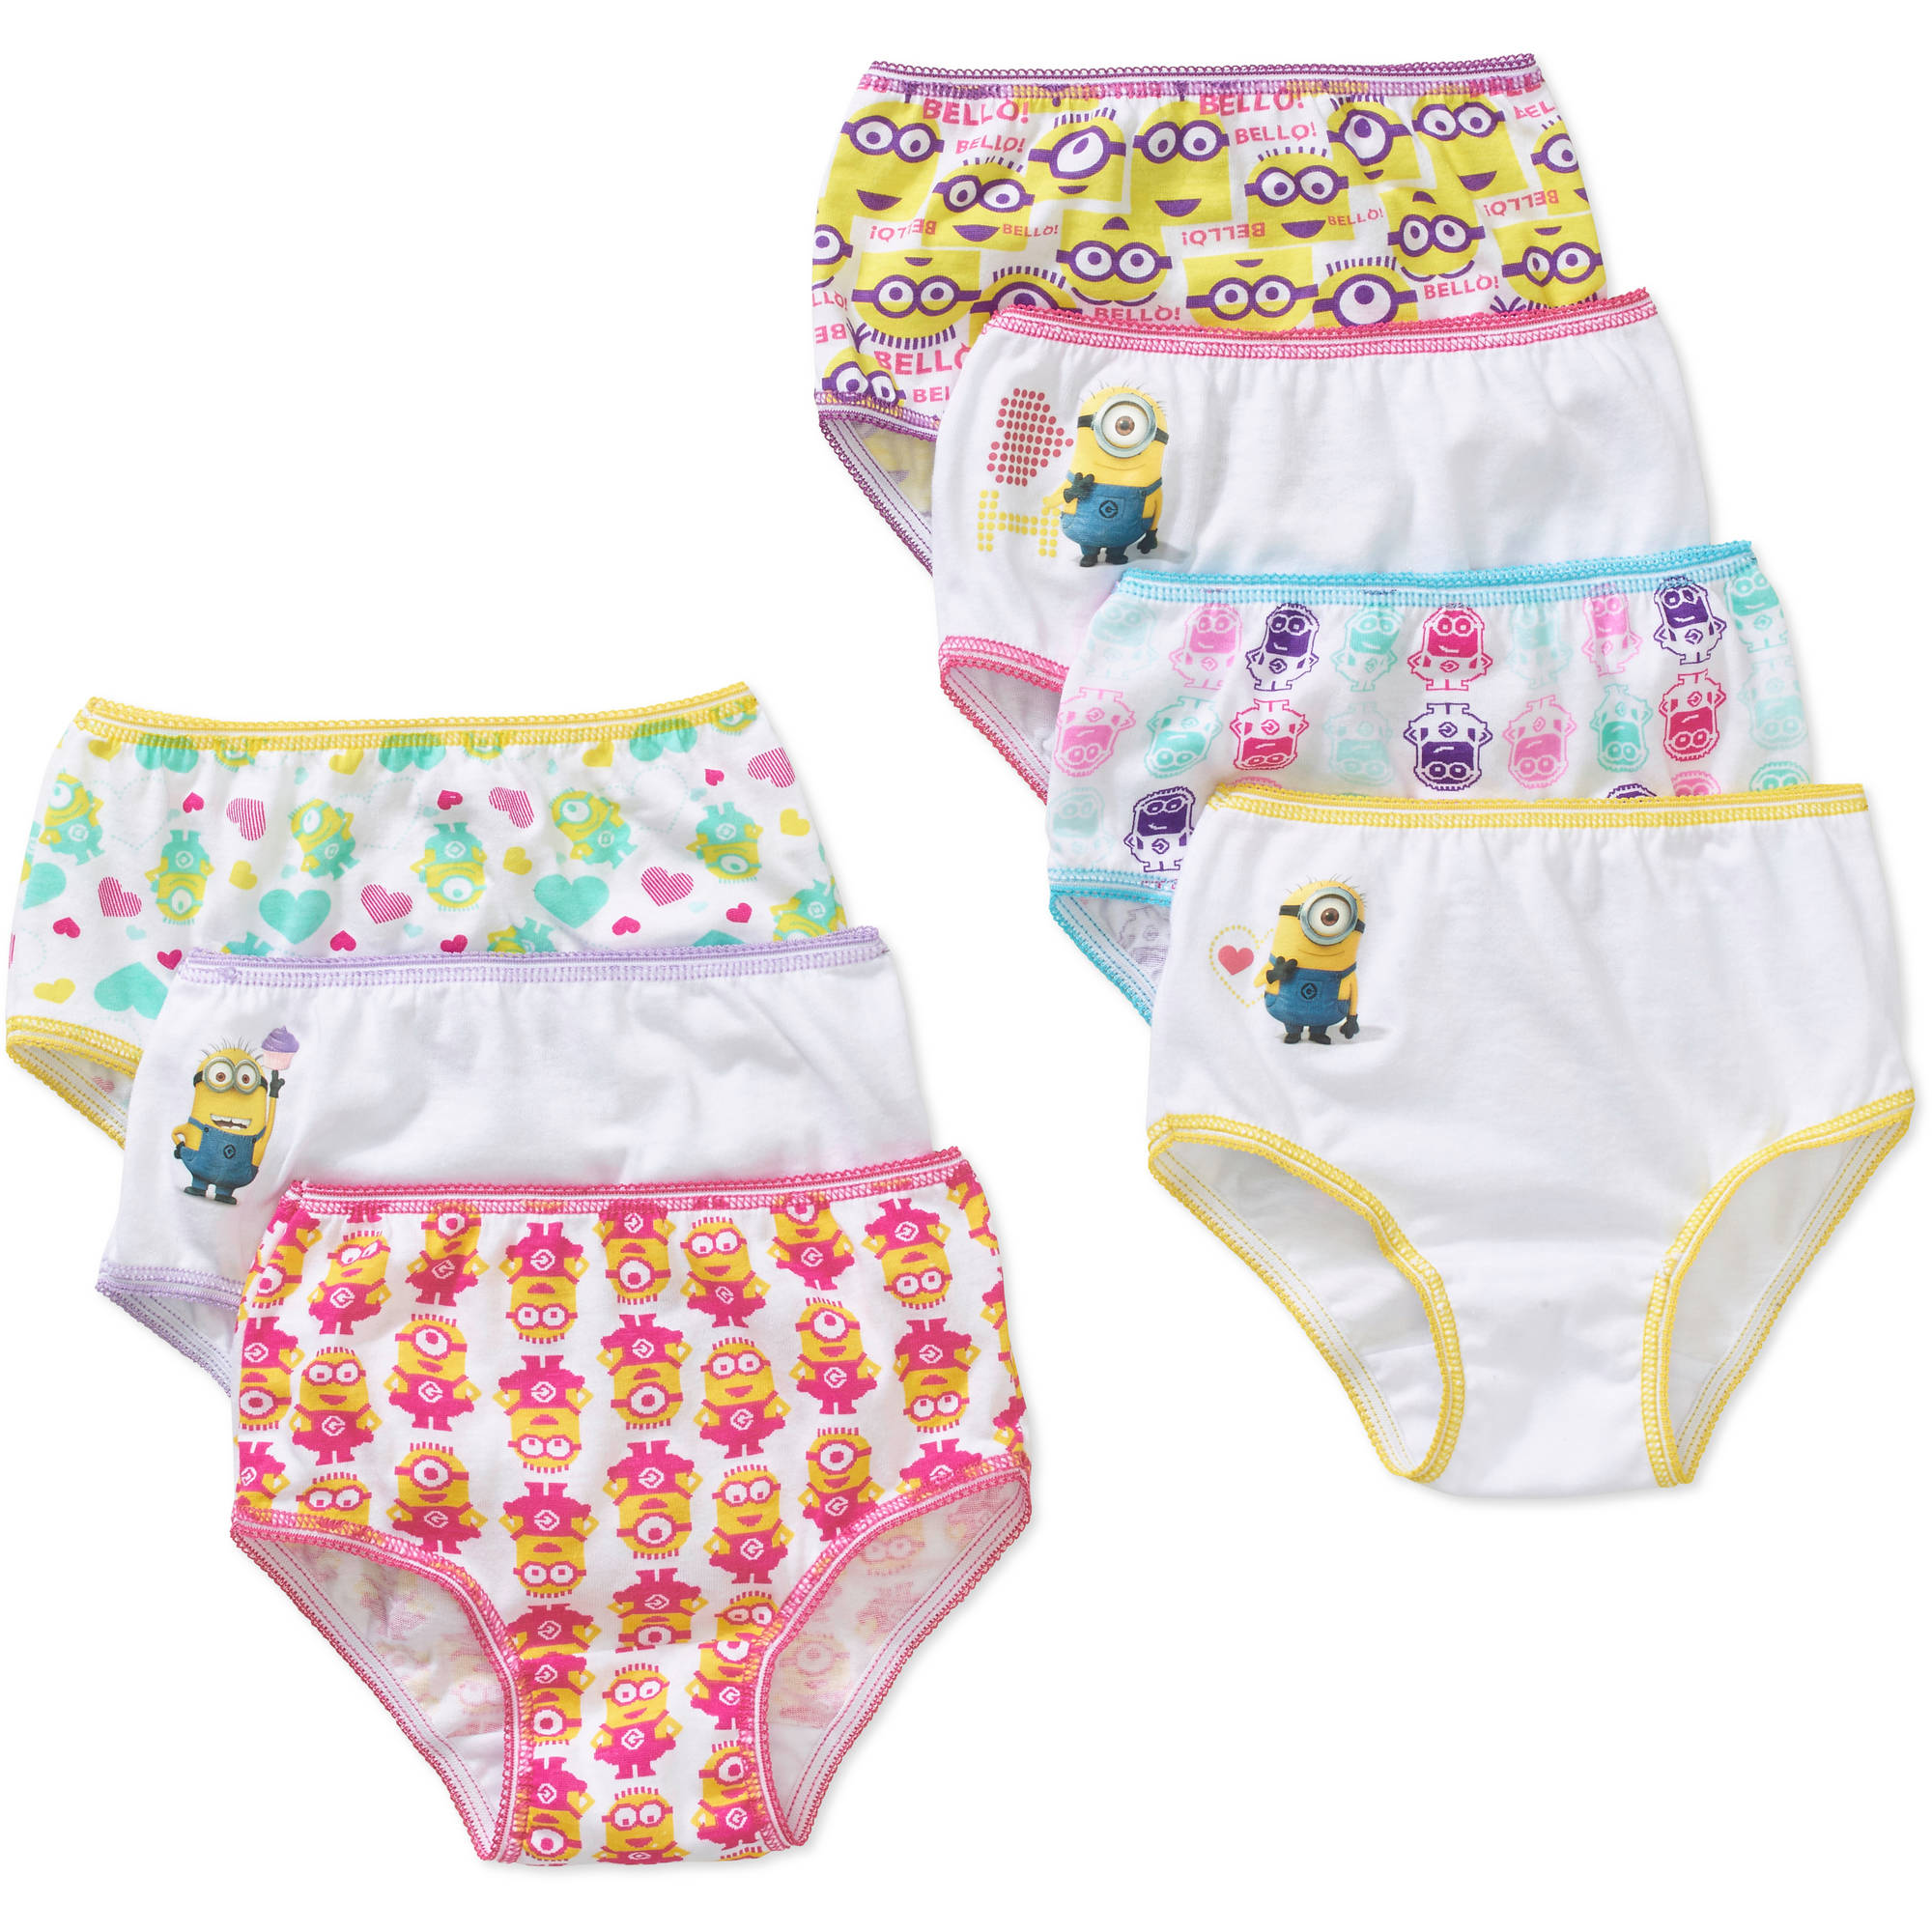 Despicable Me Toddler Girls Underwear, 7 Pack